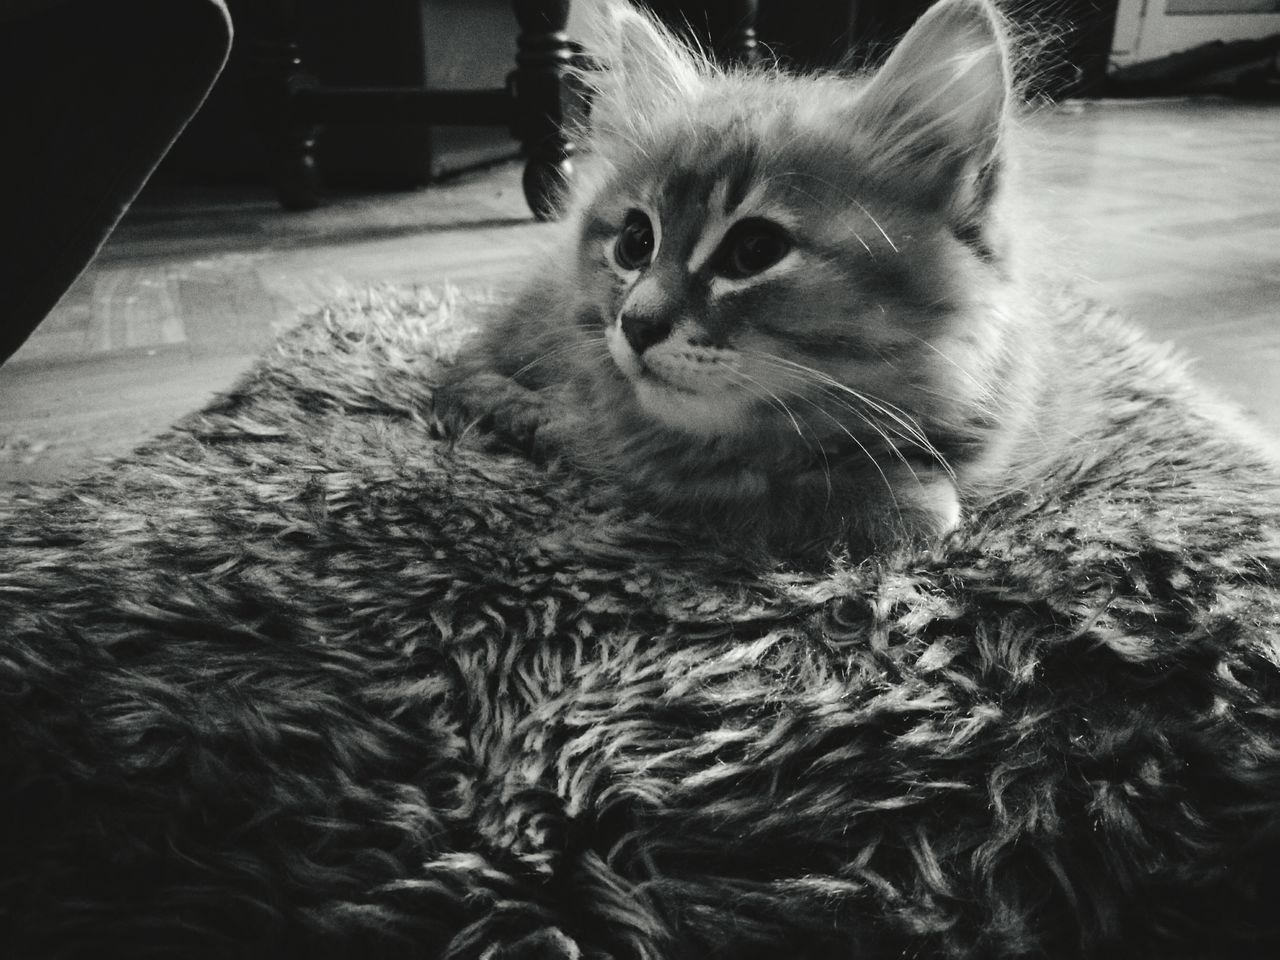 domestic cat, domestic animals, pets, mammal, feline, animal themes, cat, whisker, indoors, one animal, no people, close-up, persian cat, day